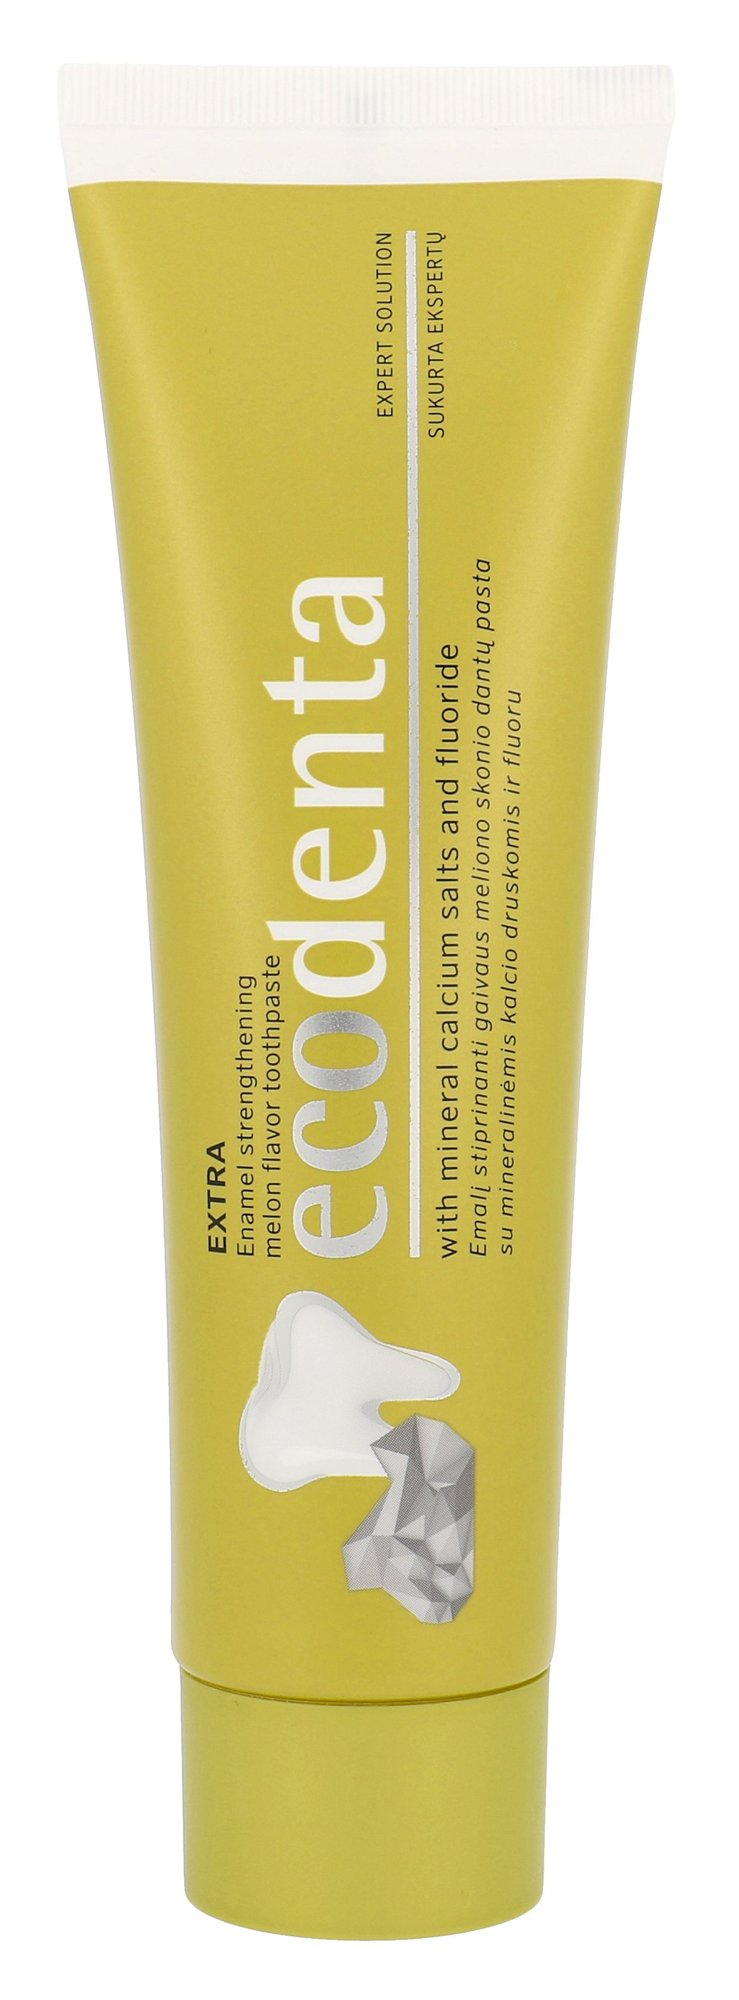 Ecodenta Toothpaste Cosmetic 100ml